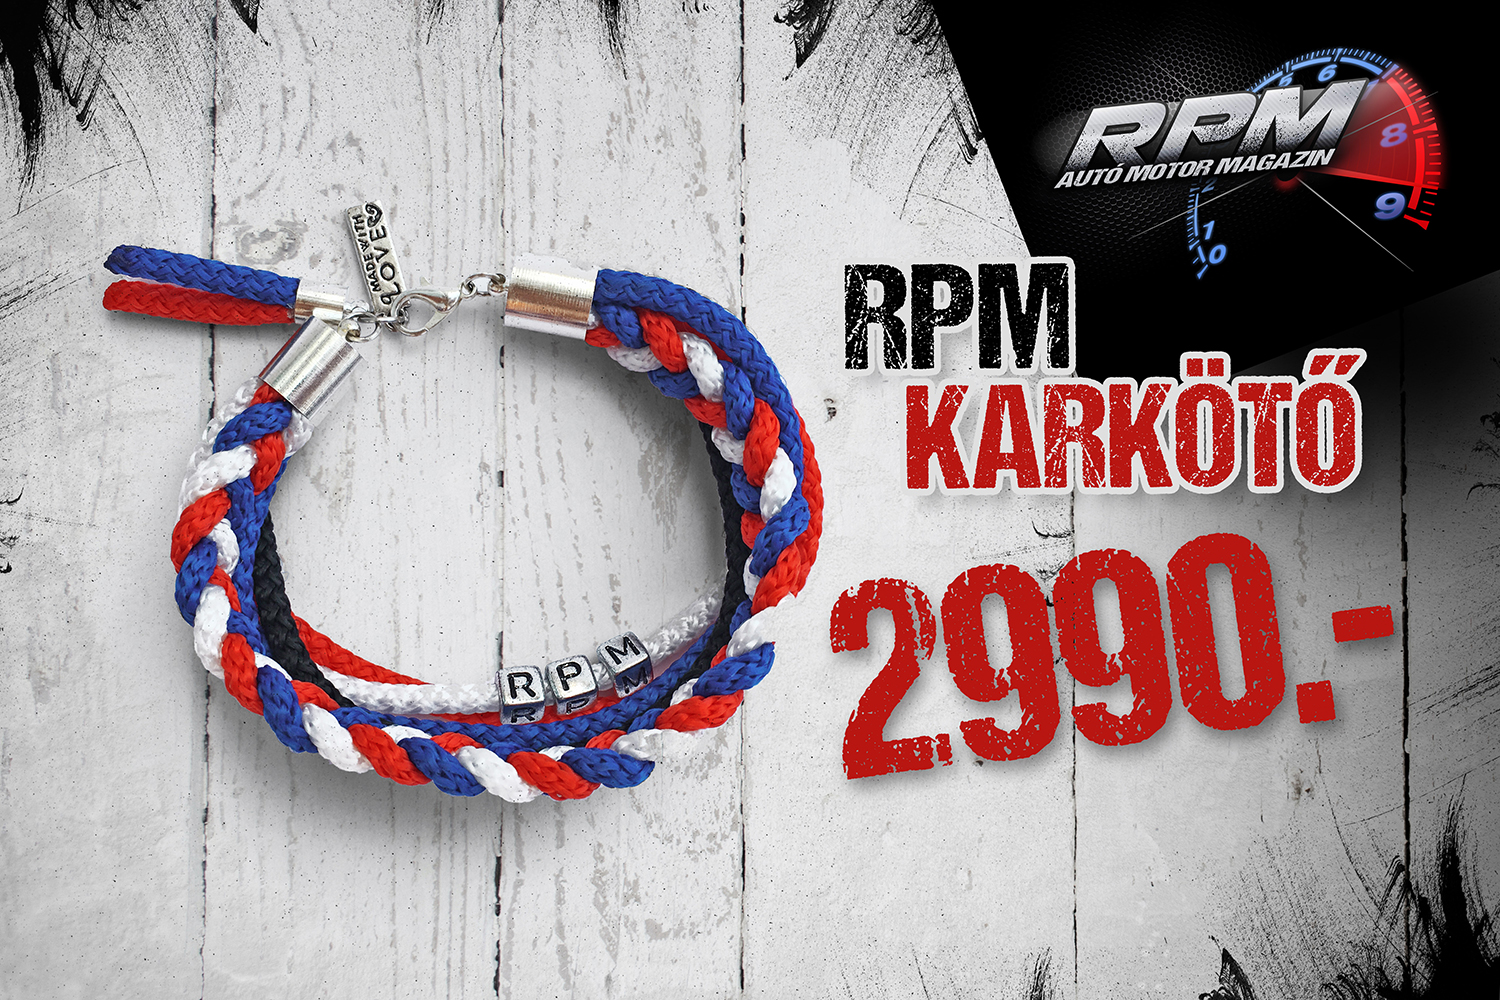 rpm_karkoto_women_price_1476207056.jpg